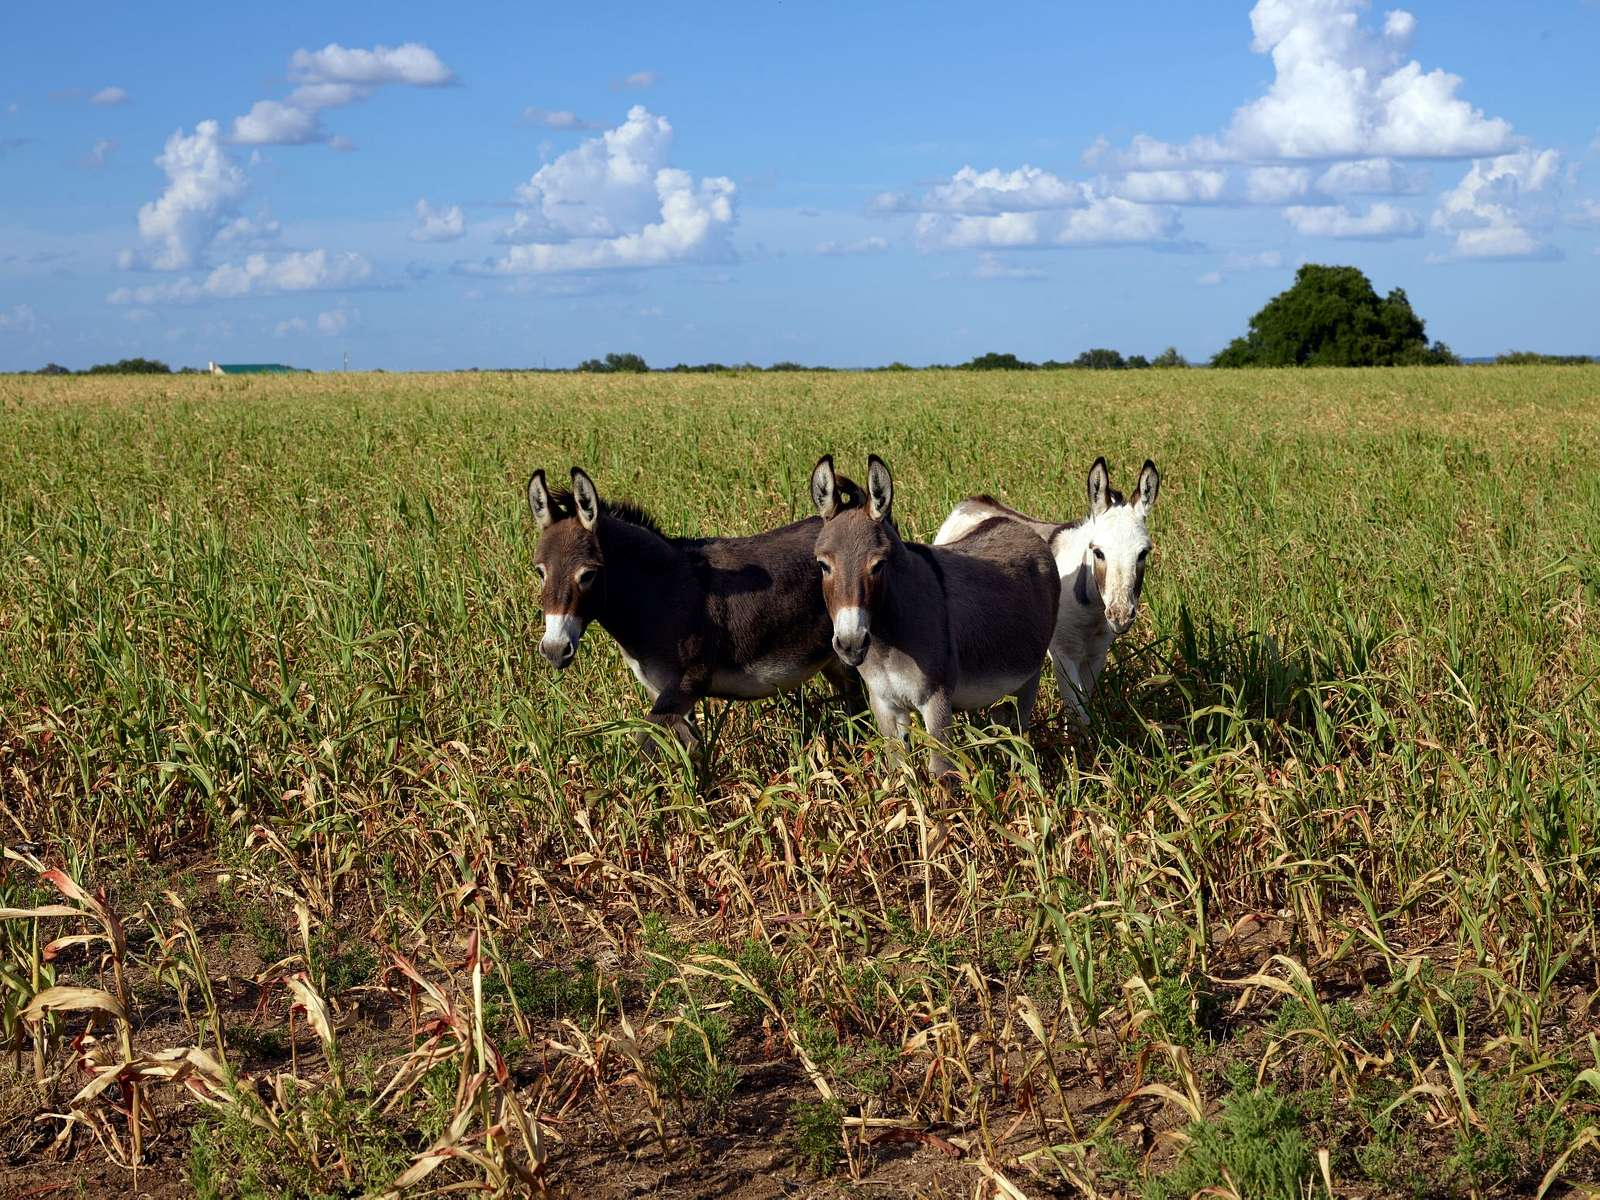 Donkeys in a field in Erath County, Texas